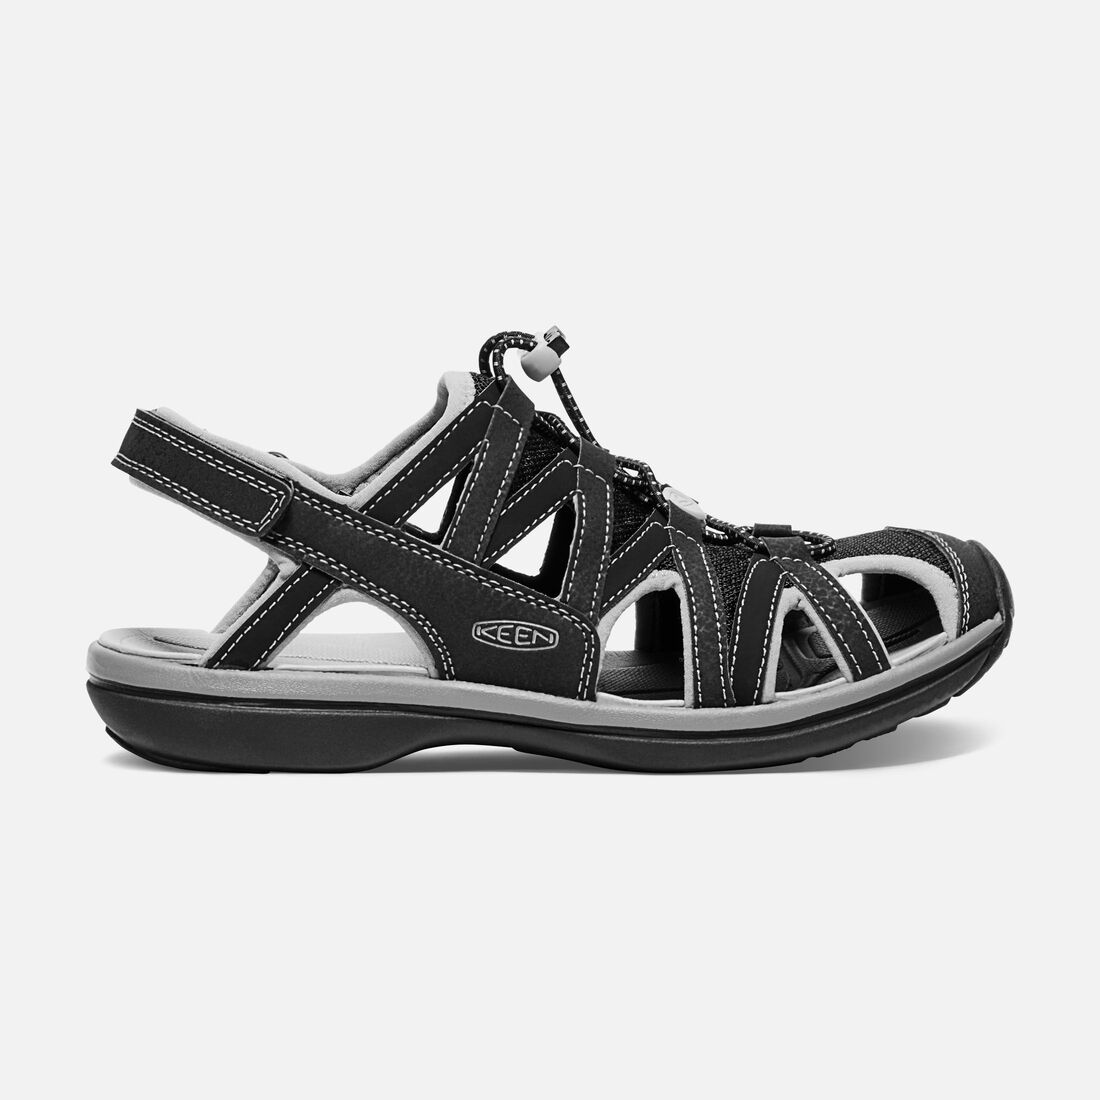 1babbc498889 Women s Sage Sandal in Black Black - large view.